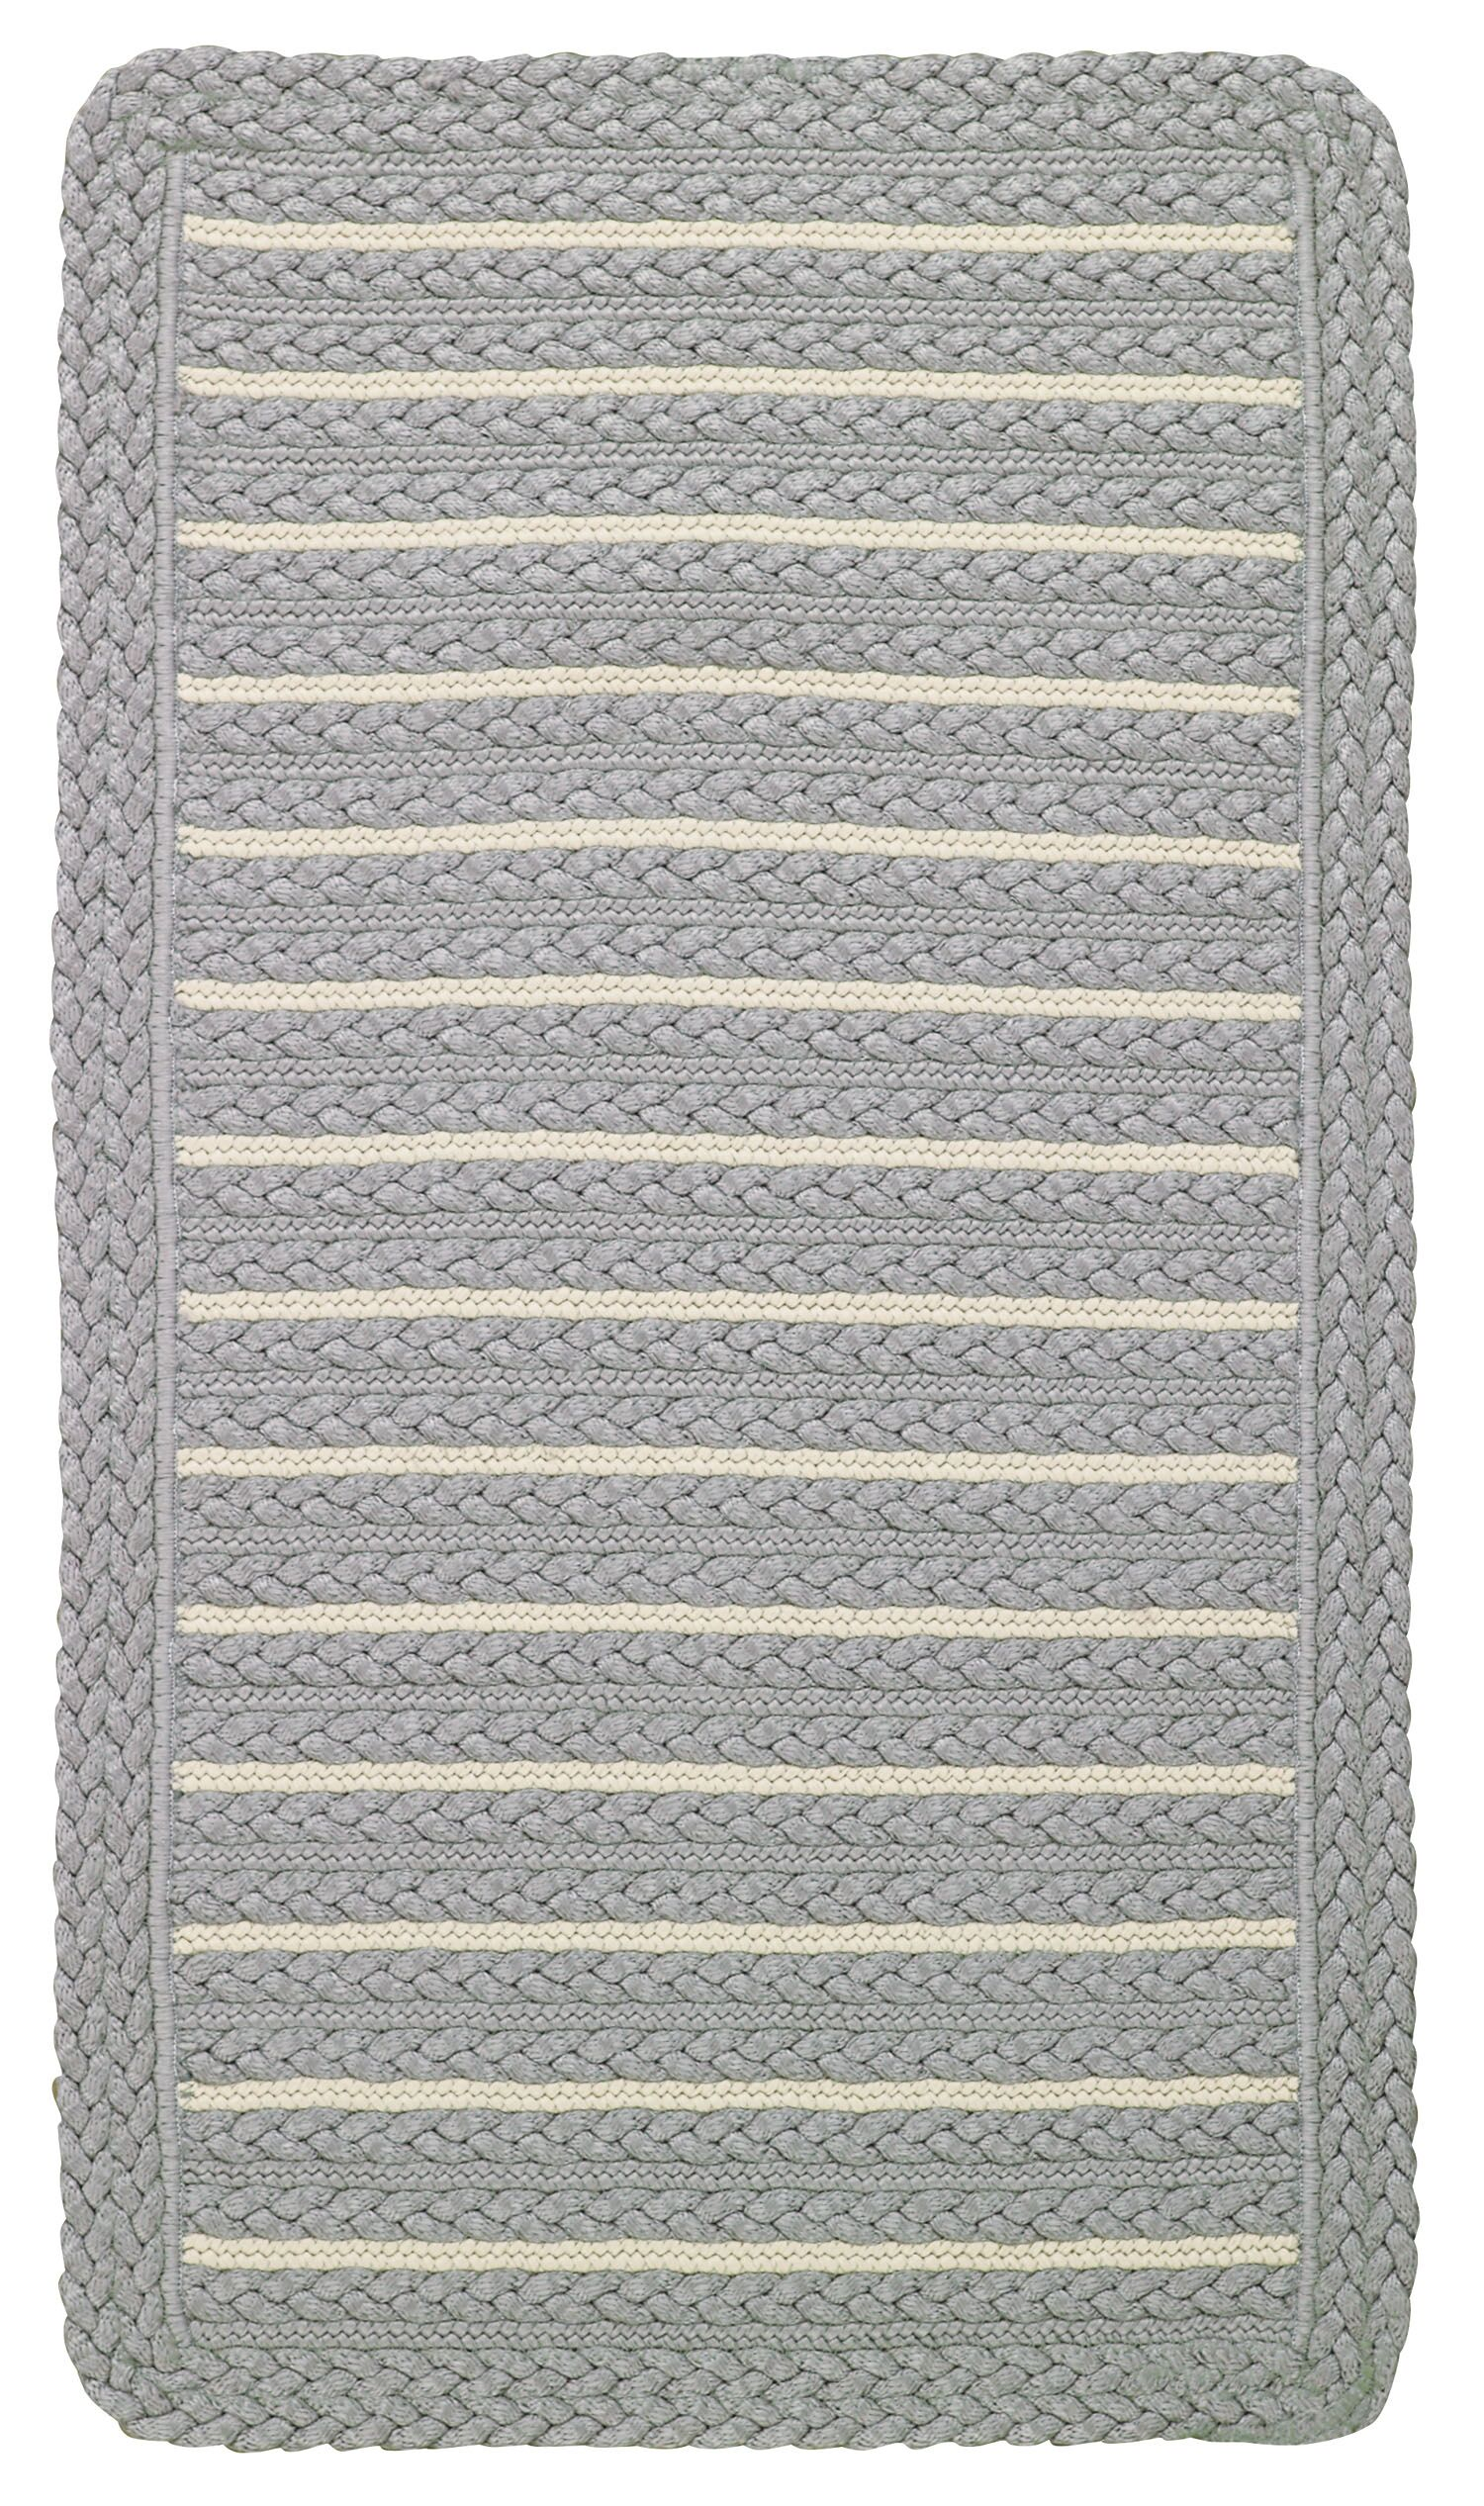 Lyndon Smoke Beige Indoor/Outdoor Area Rug Rug Size: Cross Sewn Runner 2' x 8'